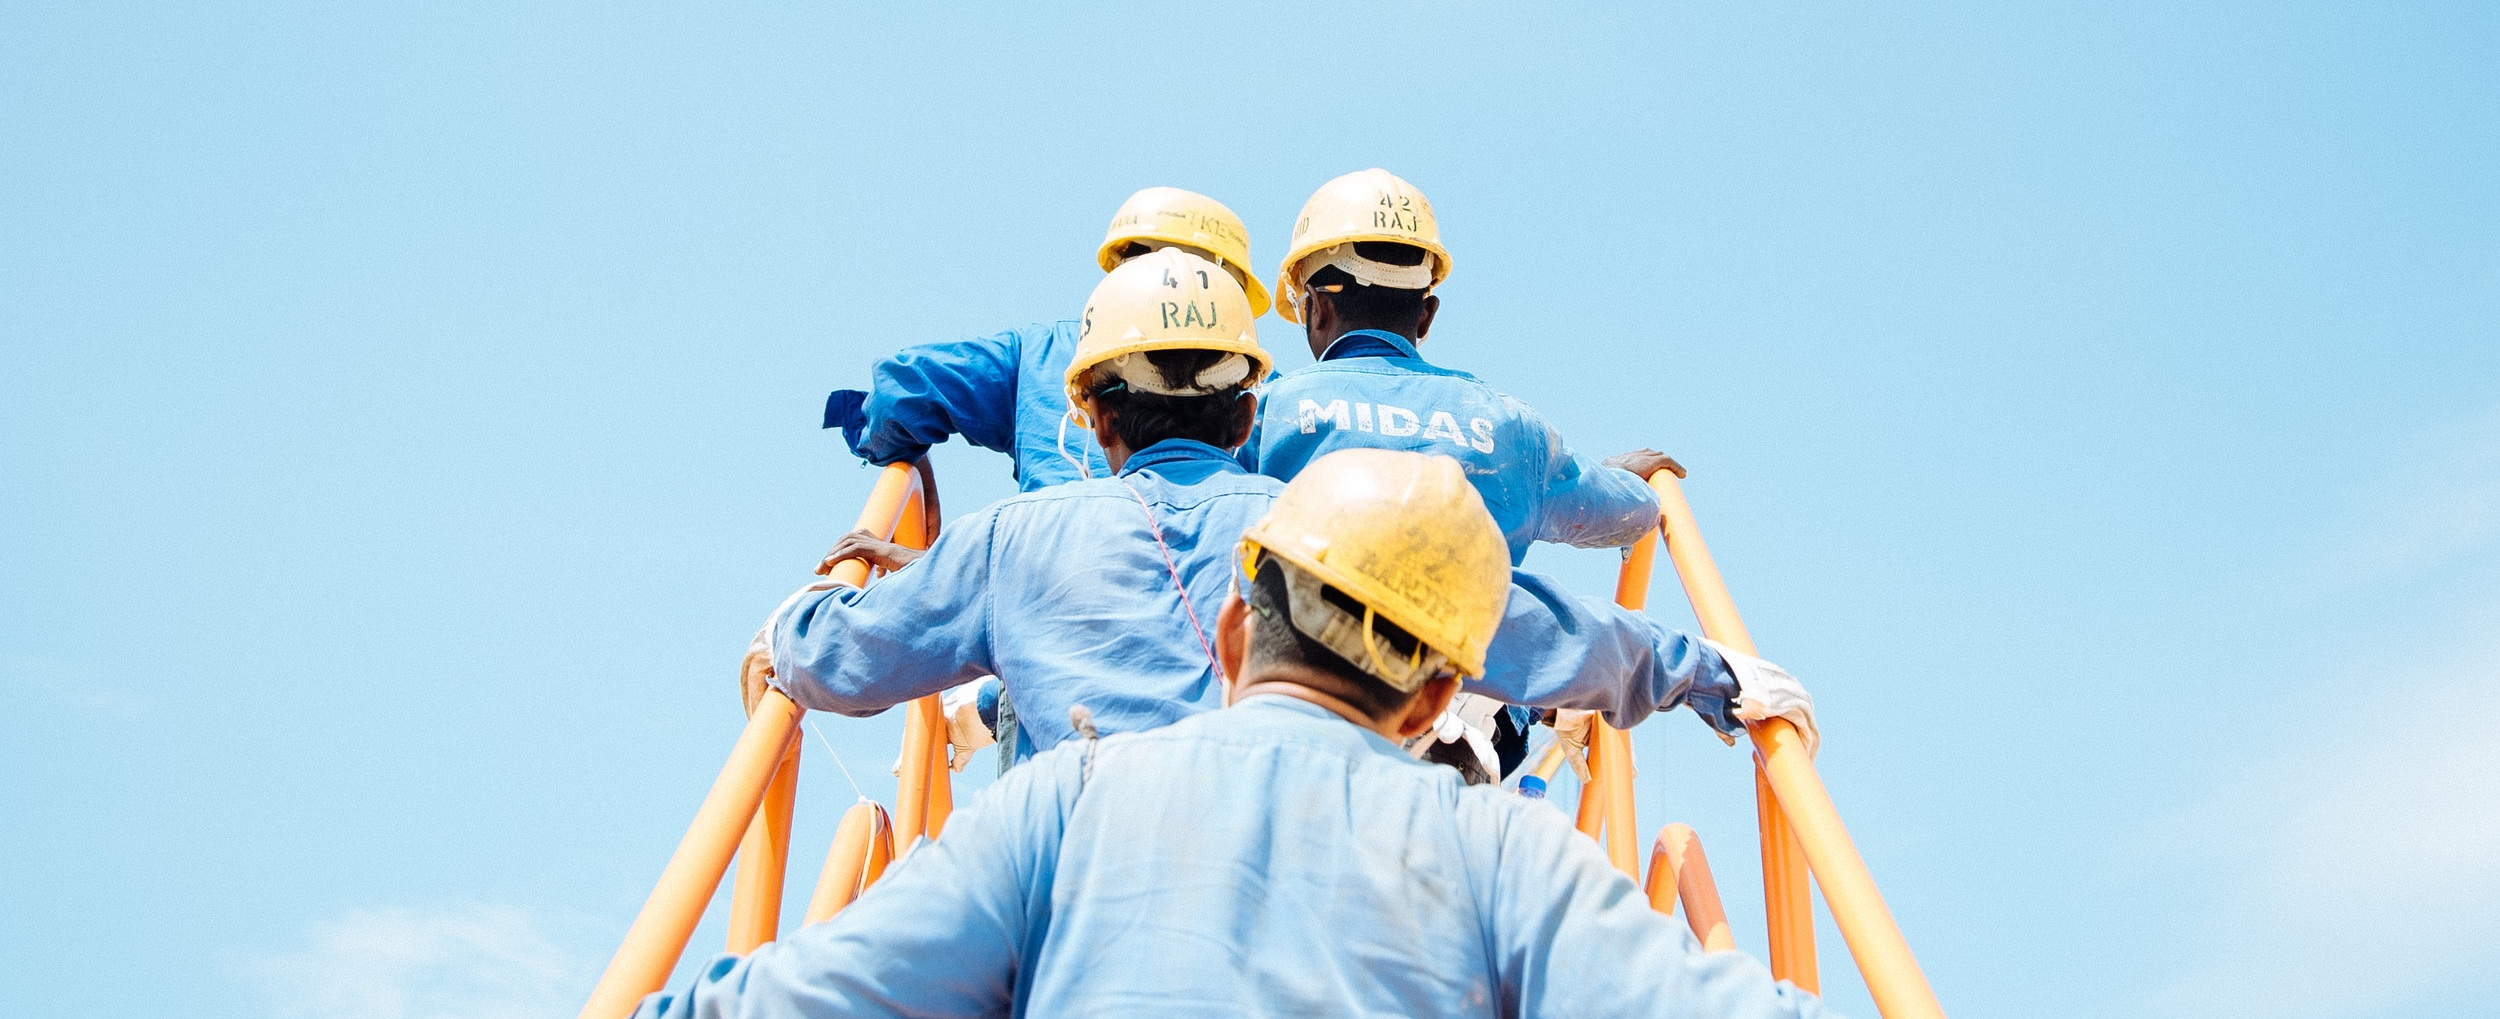 Are you a private contractor looking to get certified? -